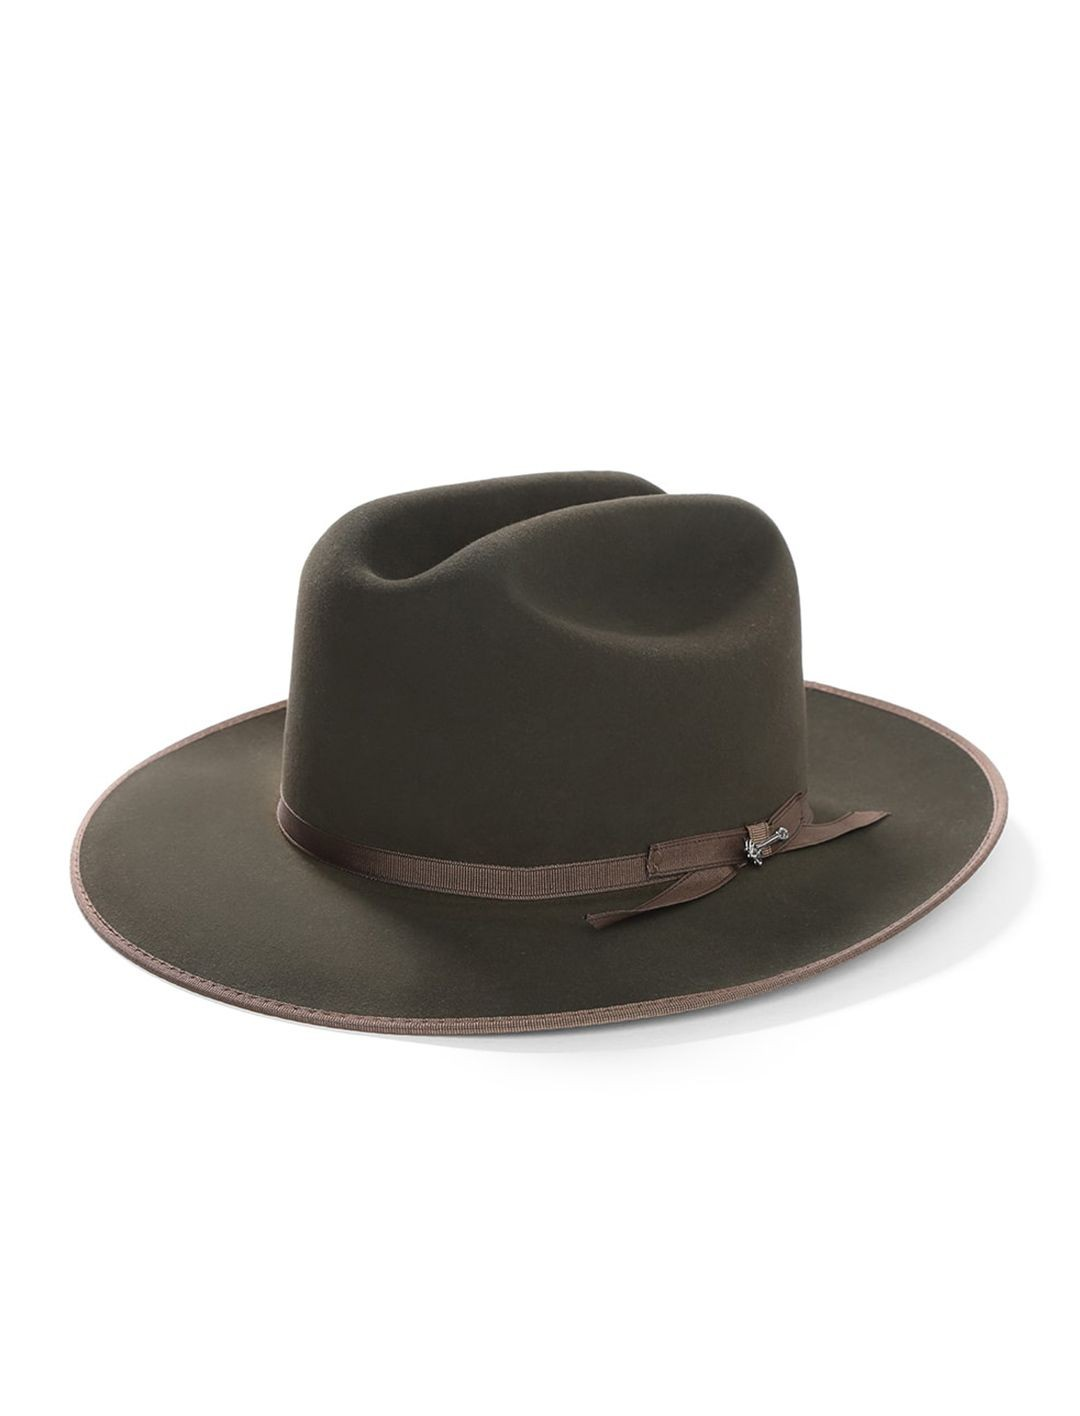 0cf6d4e7f6094 ... Open Road Royal Deluxe Hat by Stetson. 🔍. prev